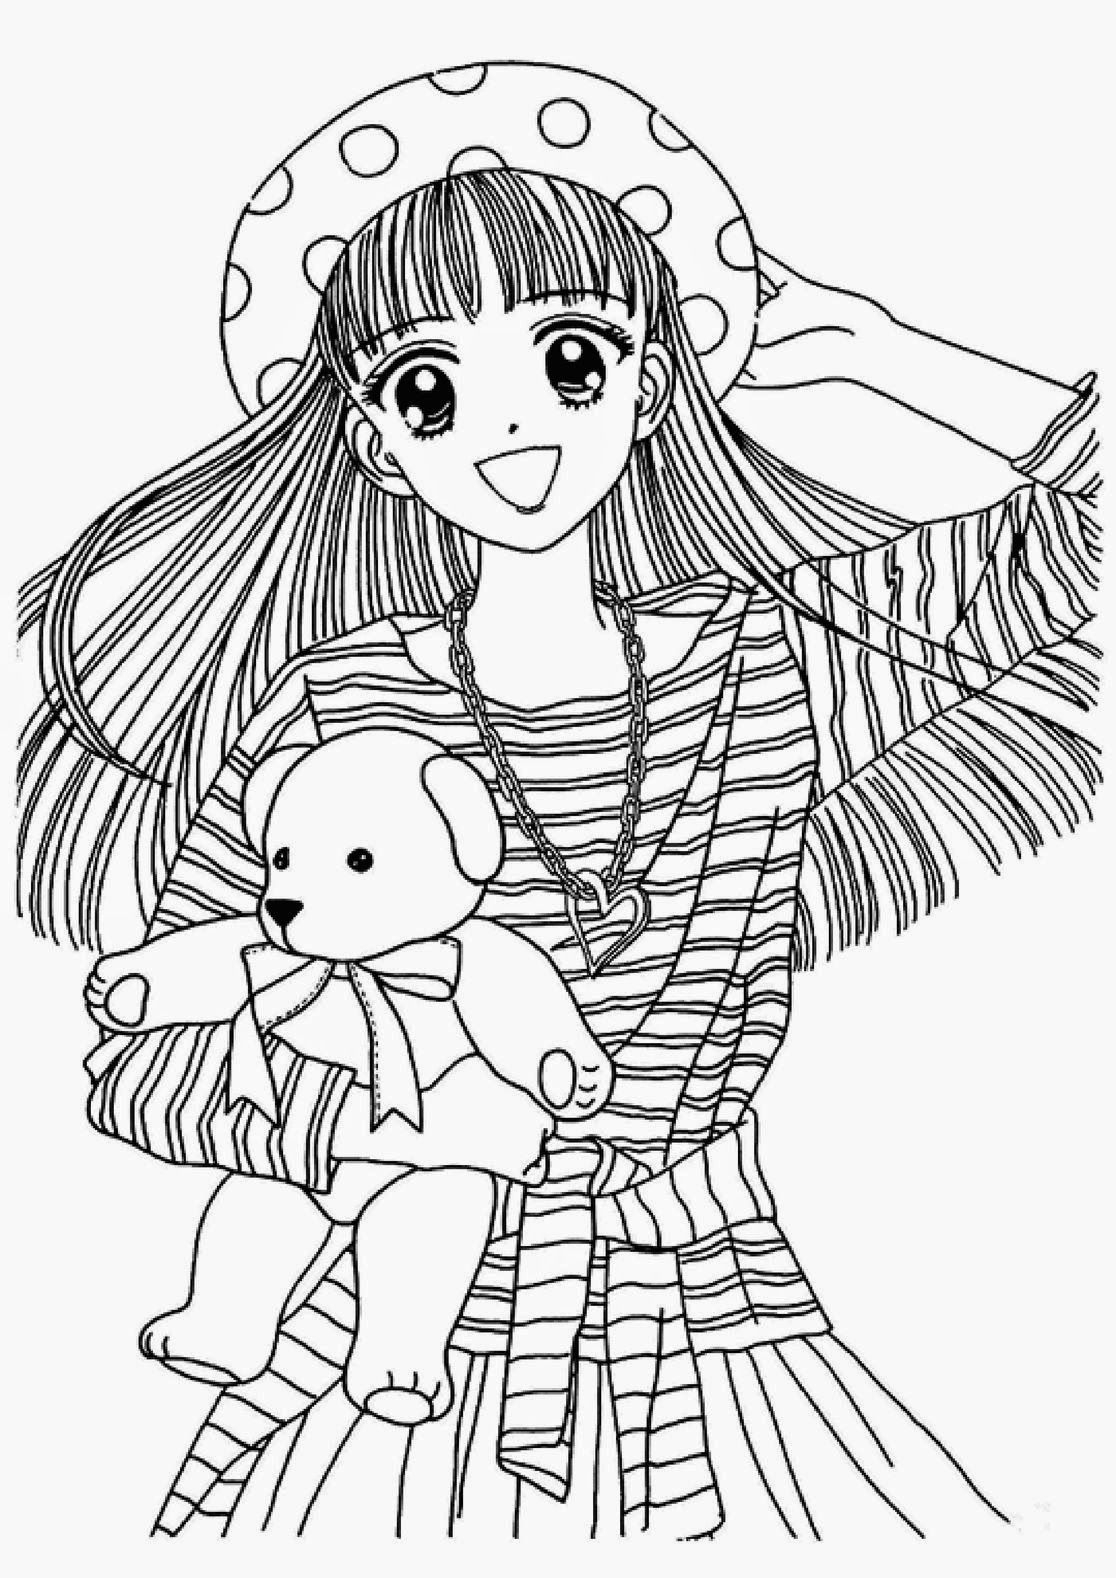 animation coloring pages coloring pages anime coloring pages free and printable coloring pages animation